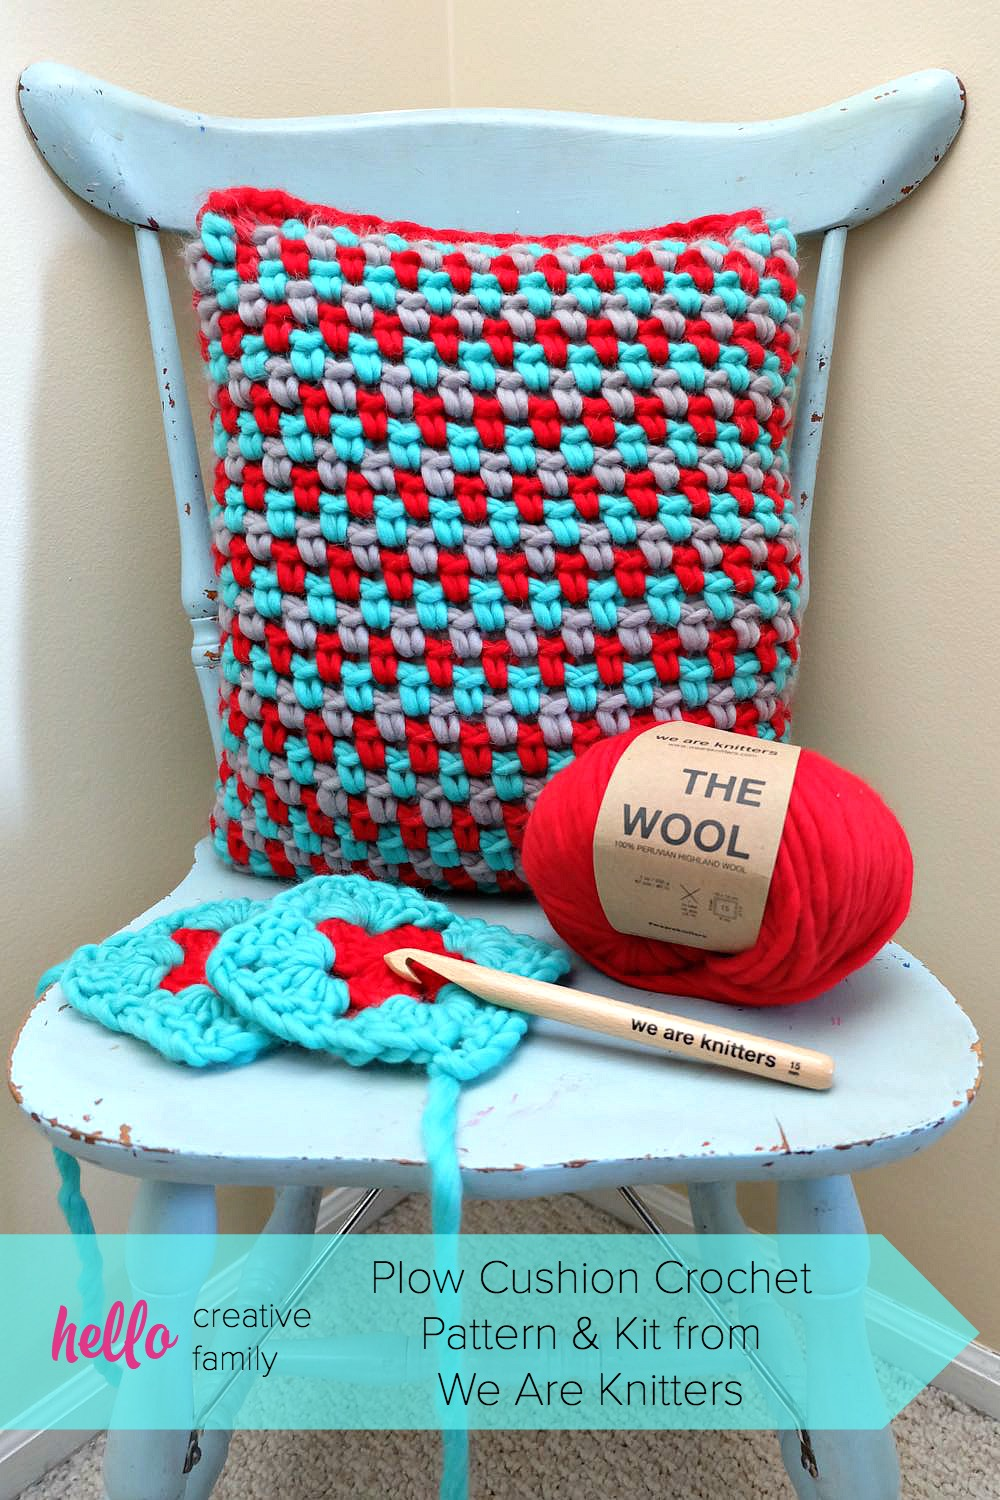 Crochet and knitting is easy, with a little help from We Are Knitters! Check out the gorgeous Plow Cushion Crochet Pattern and Kit we made!